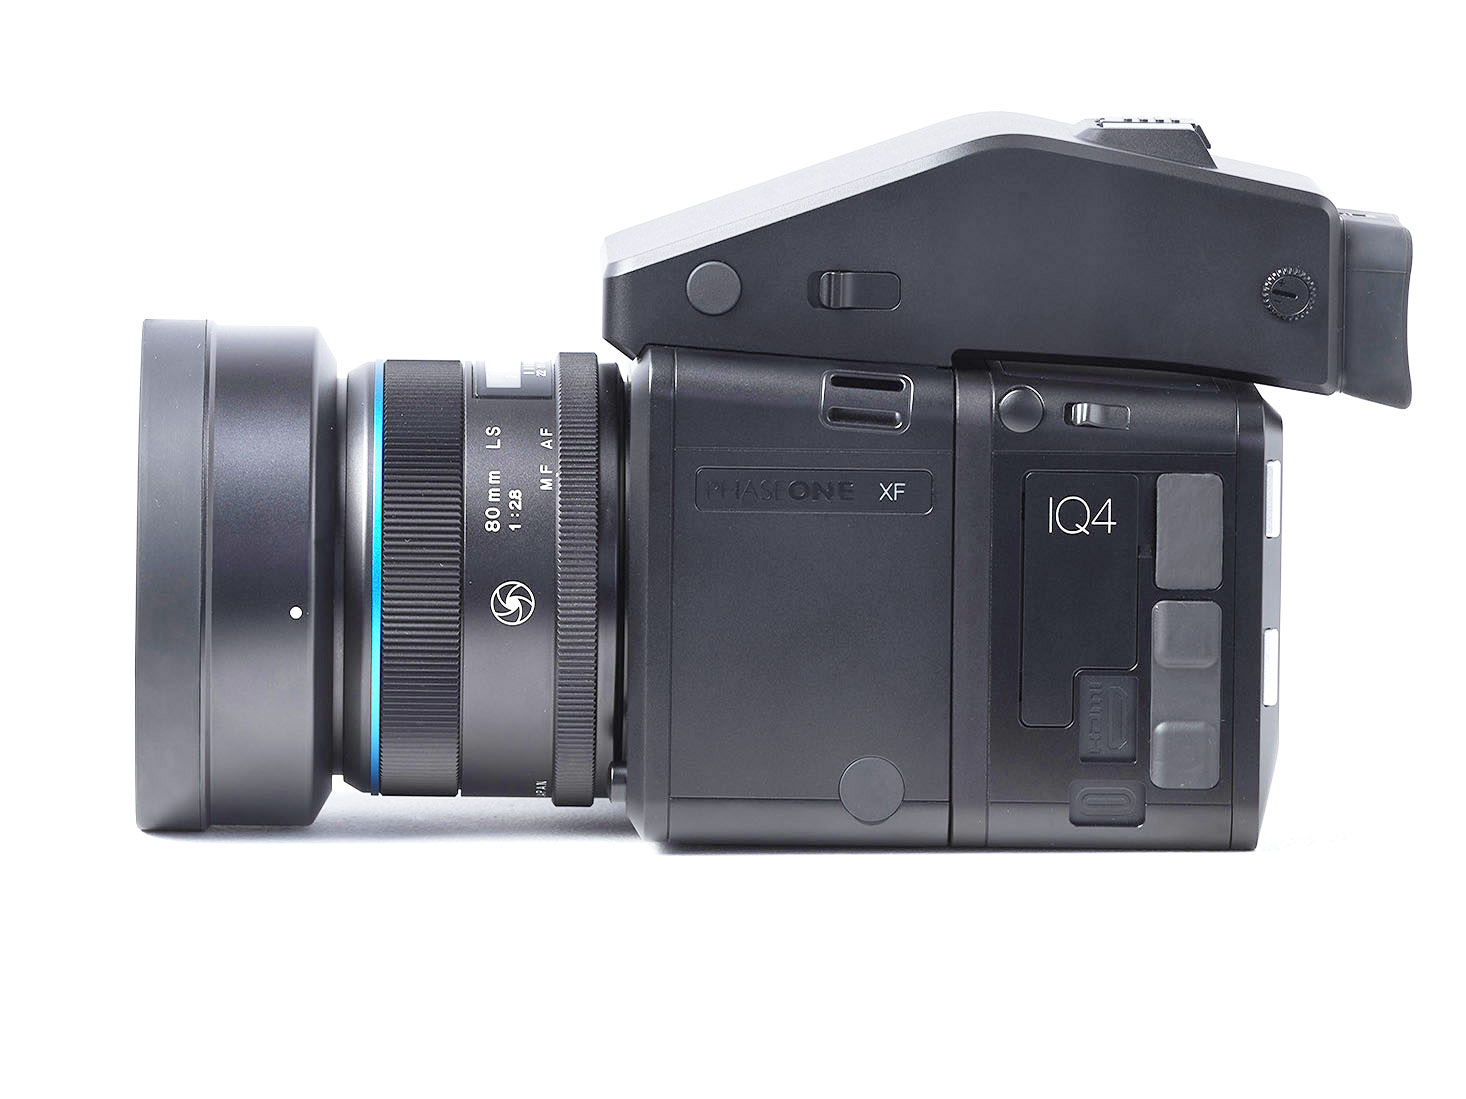 Phase One IQ4 150 XF Camera system with XF body and